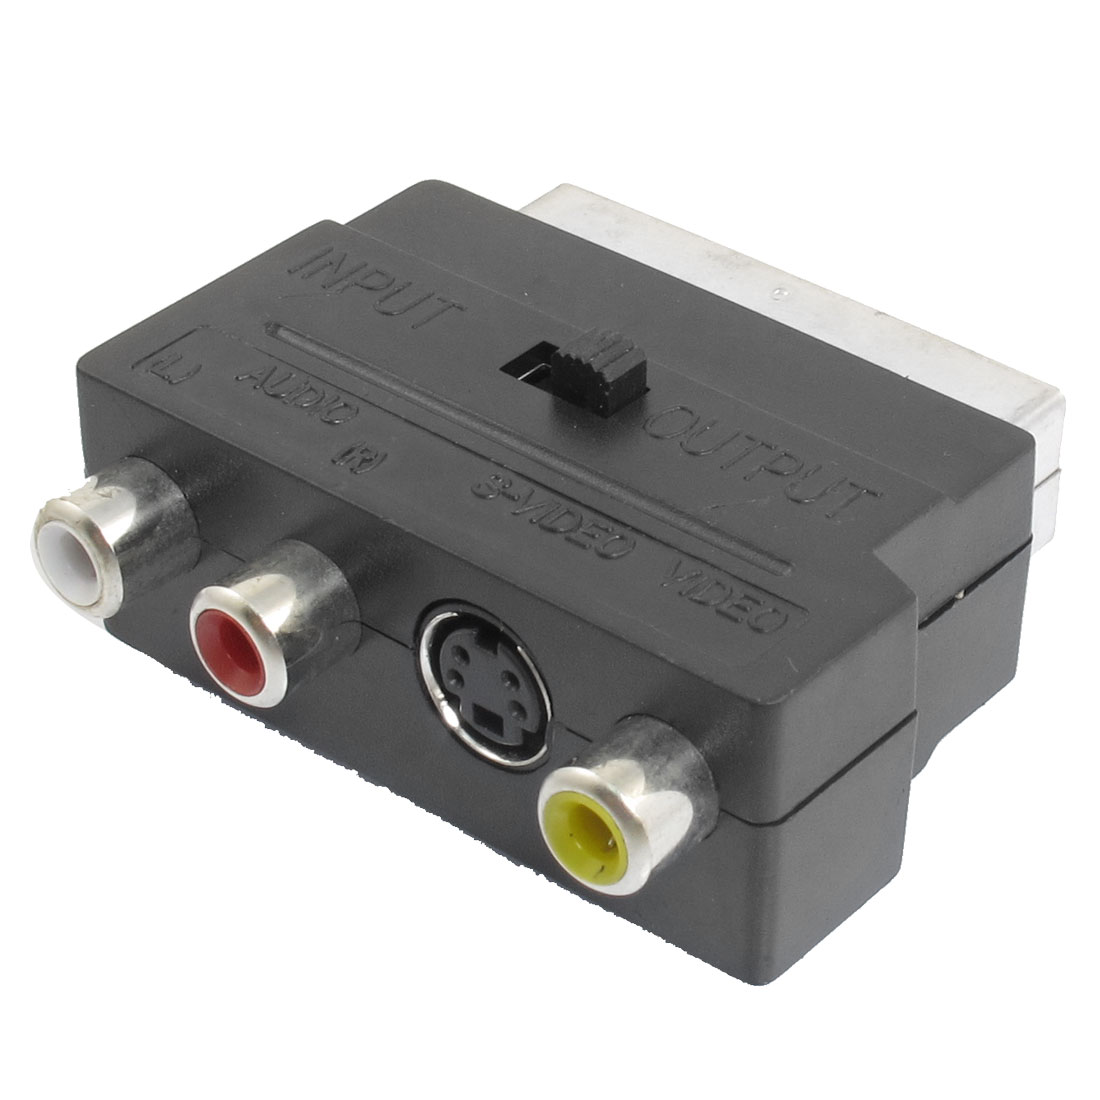 Scart 20 Pin Male to 3 RCA AV Female Adapter Connector